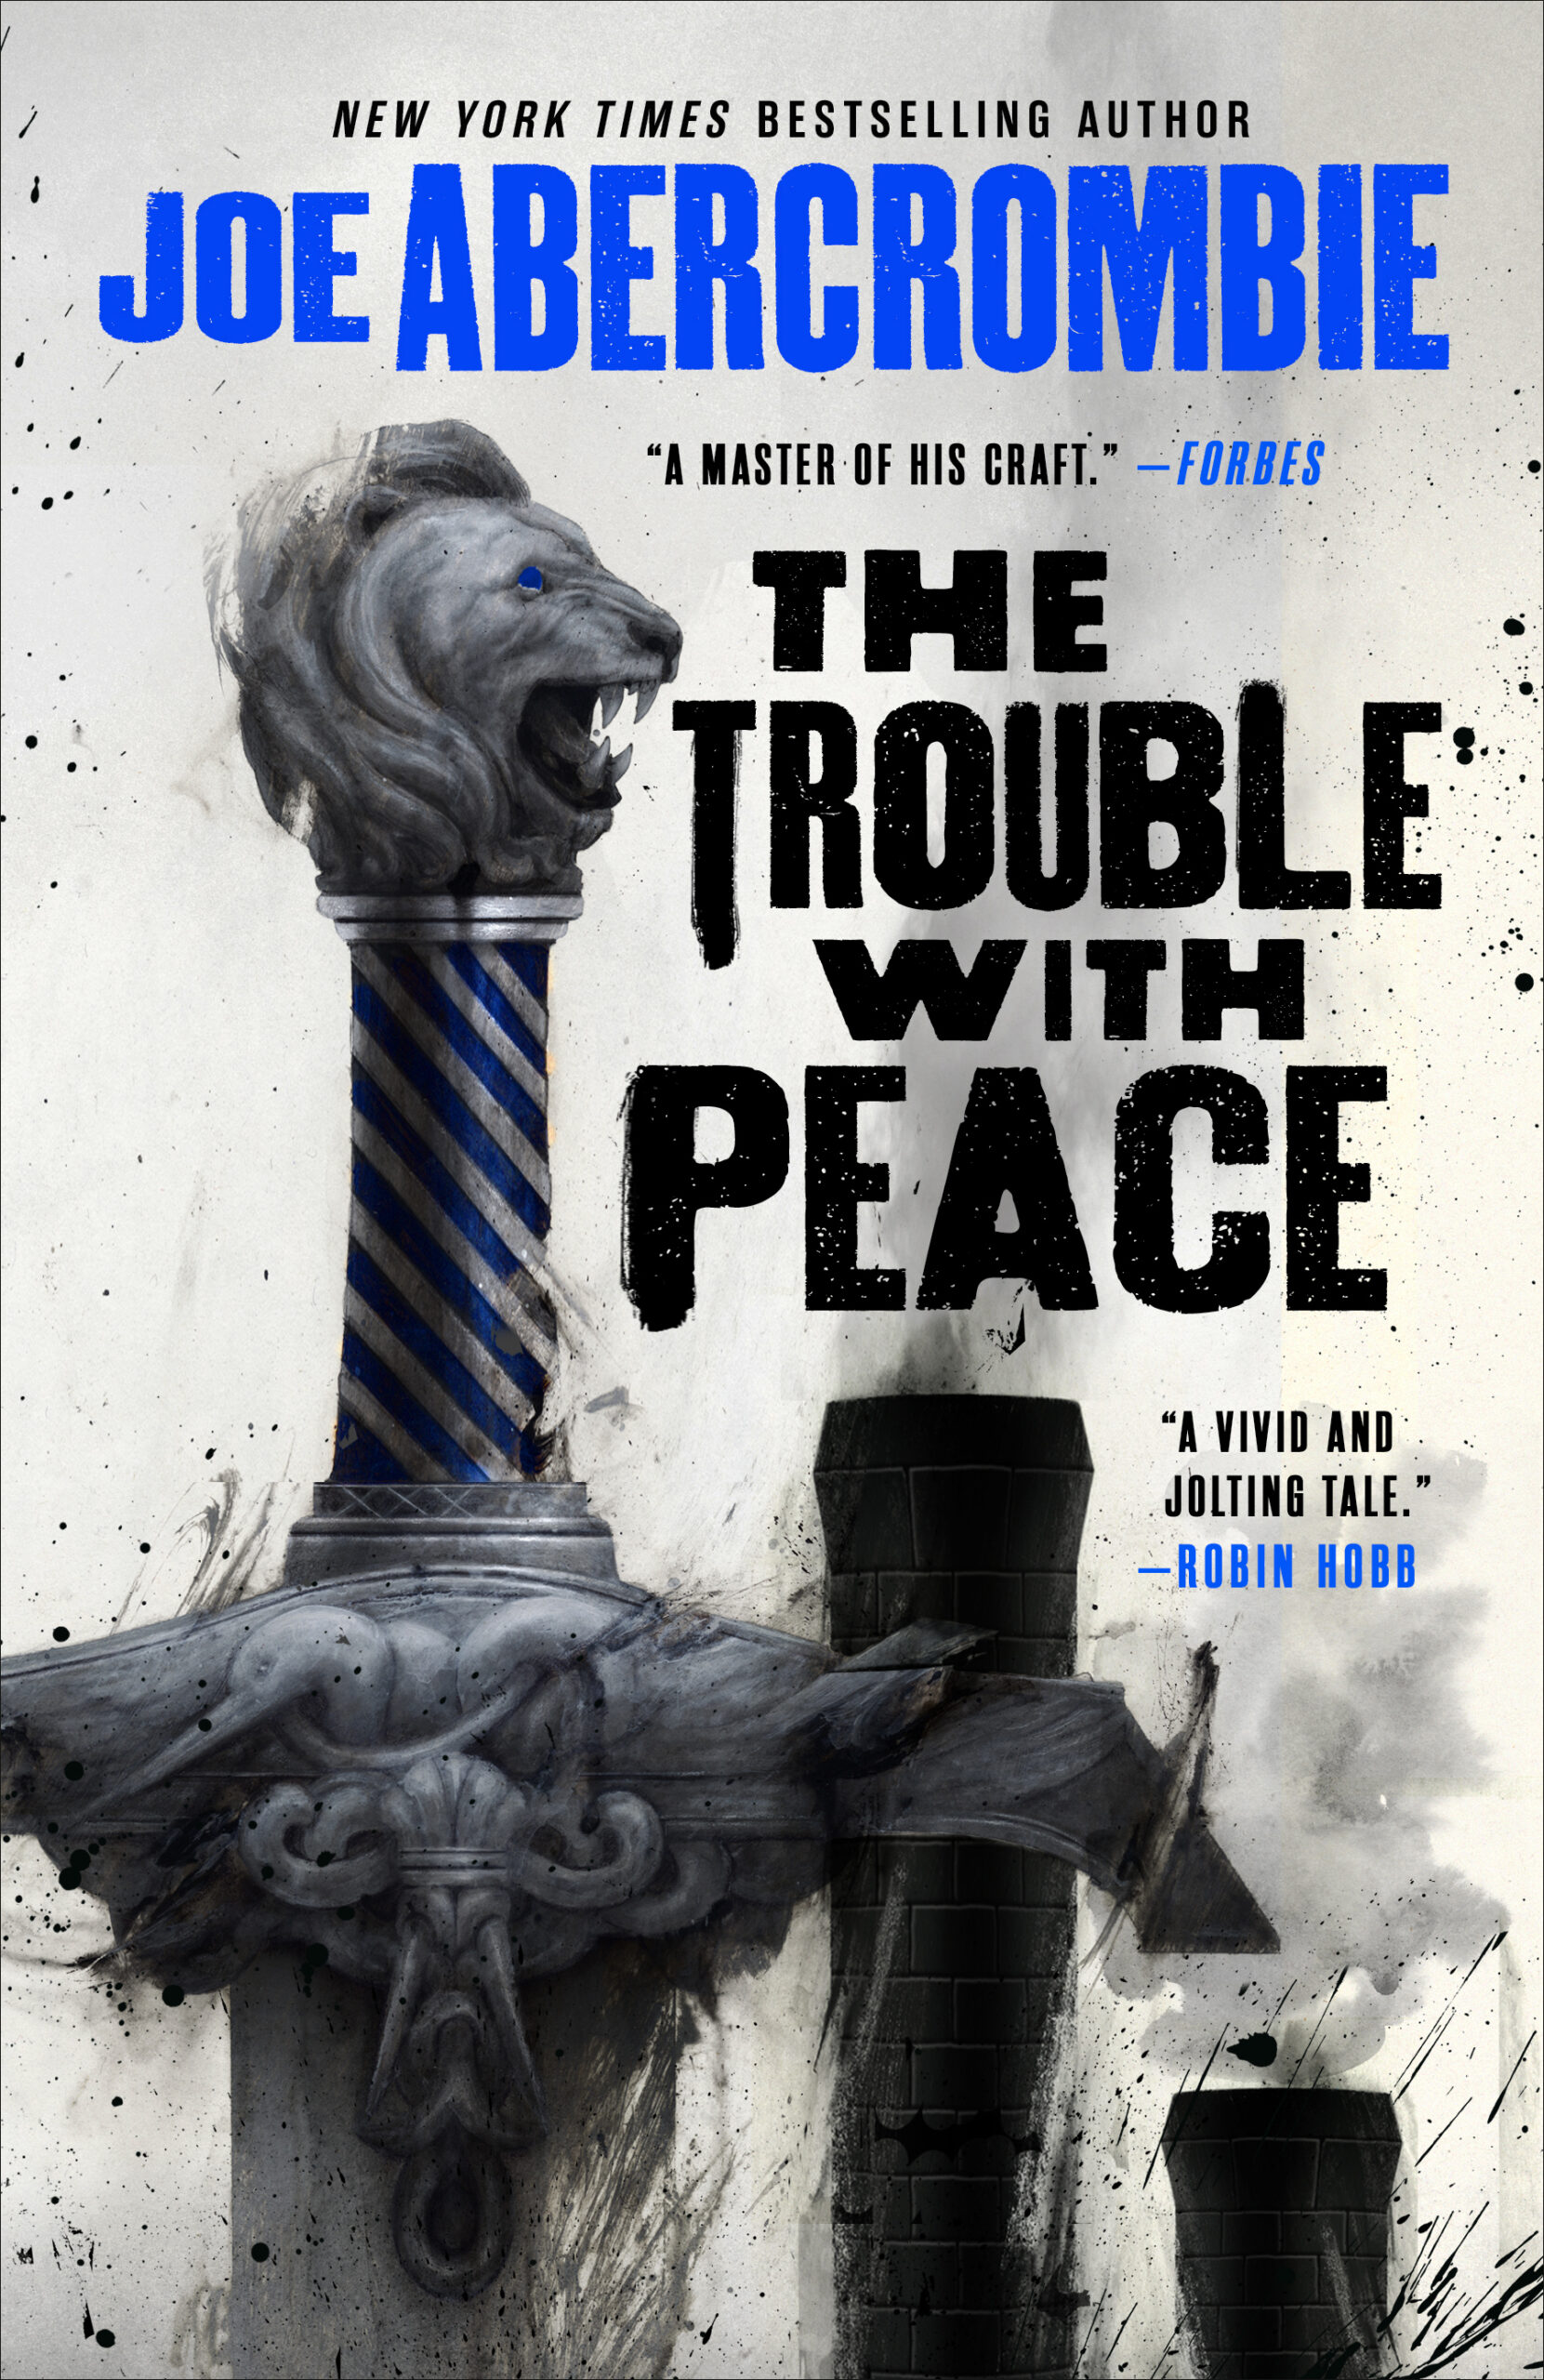 The Trouble With Peace : trouble, peace, Cover, Launch:, TROUBLE, PEACE, Trade, Paperback, Edition, Abercrombie, Orbit, Books